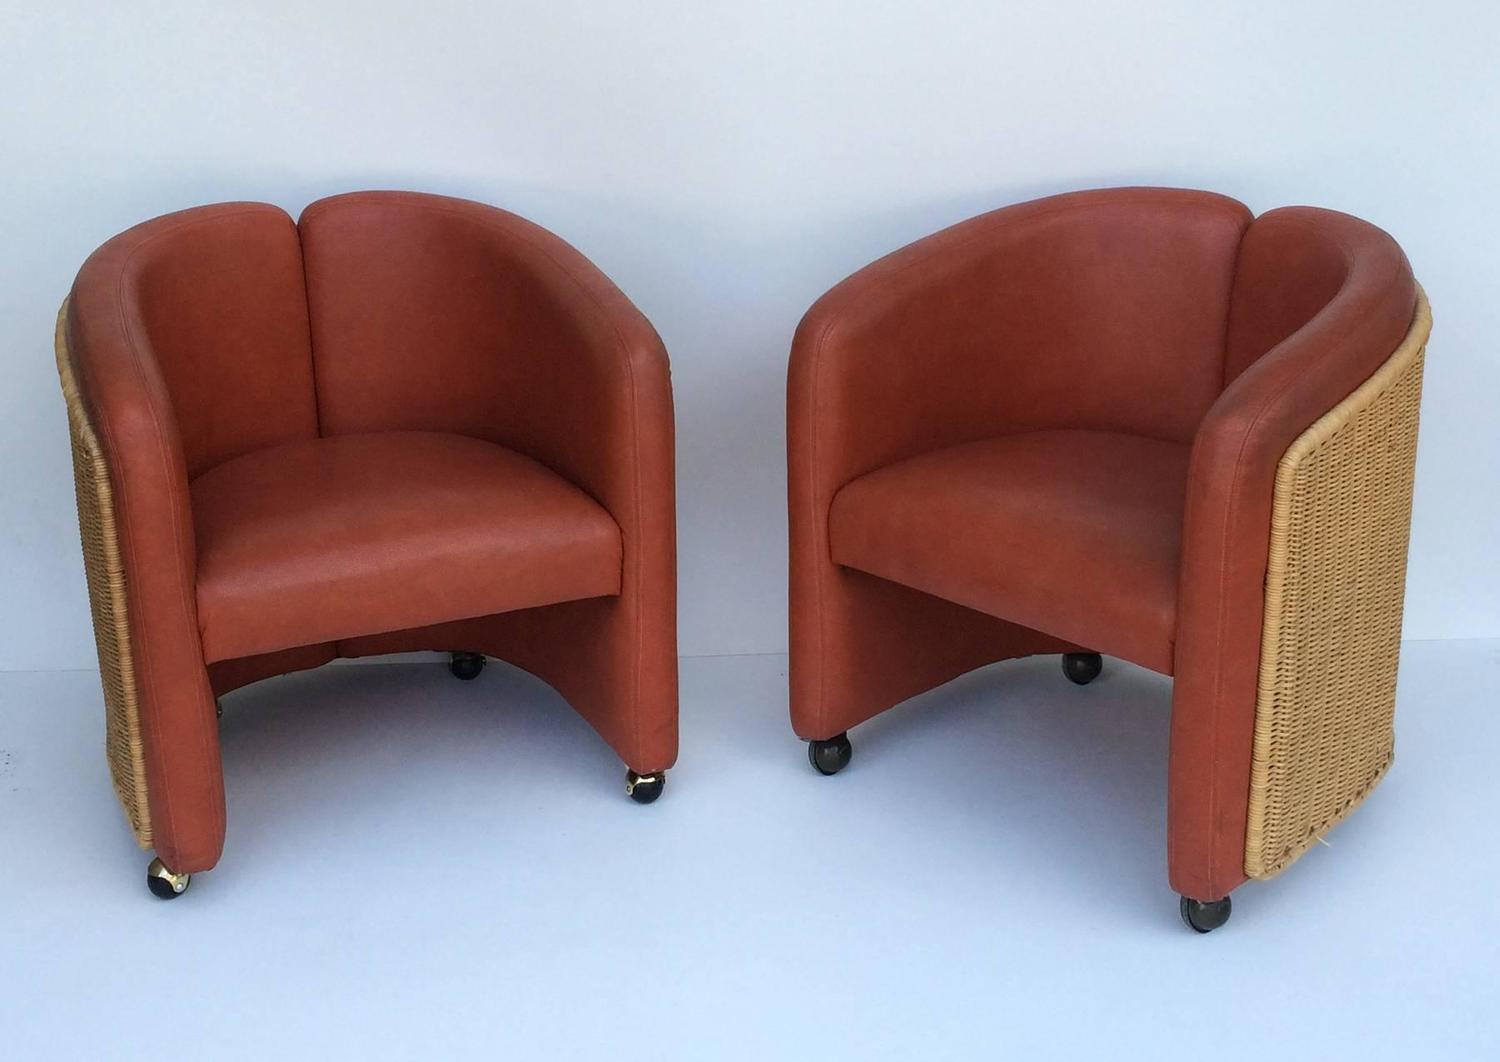 shelby williams chairs eames replica chair aldi mid century leather and wicker club by